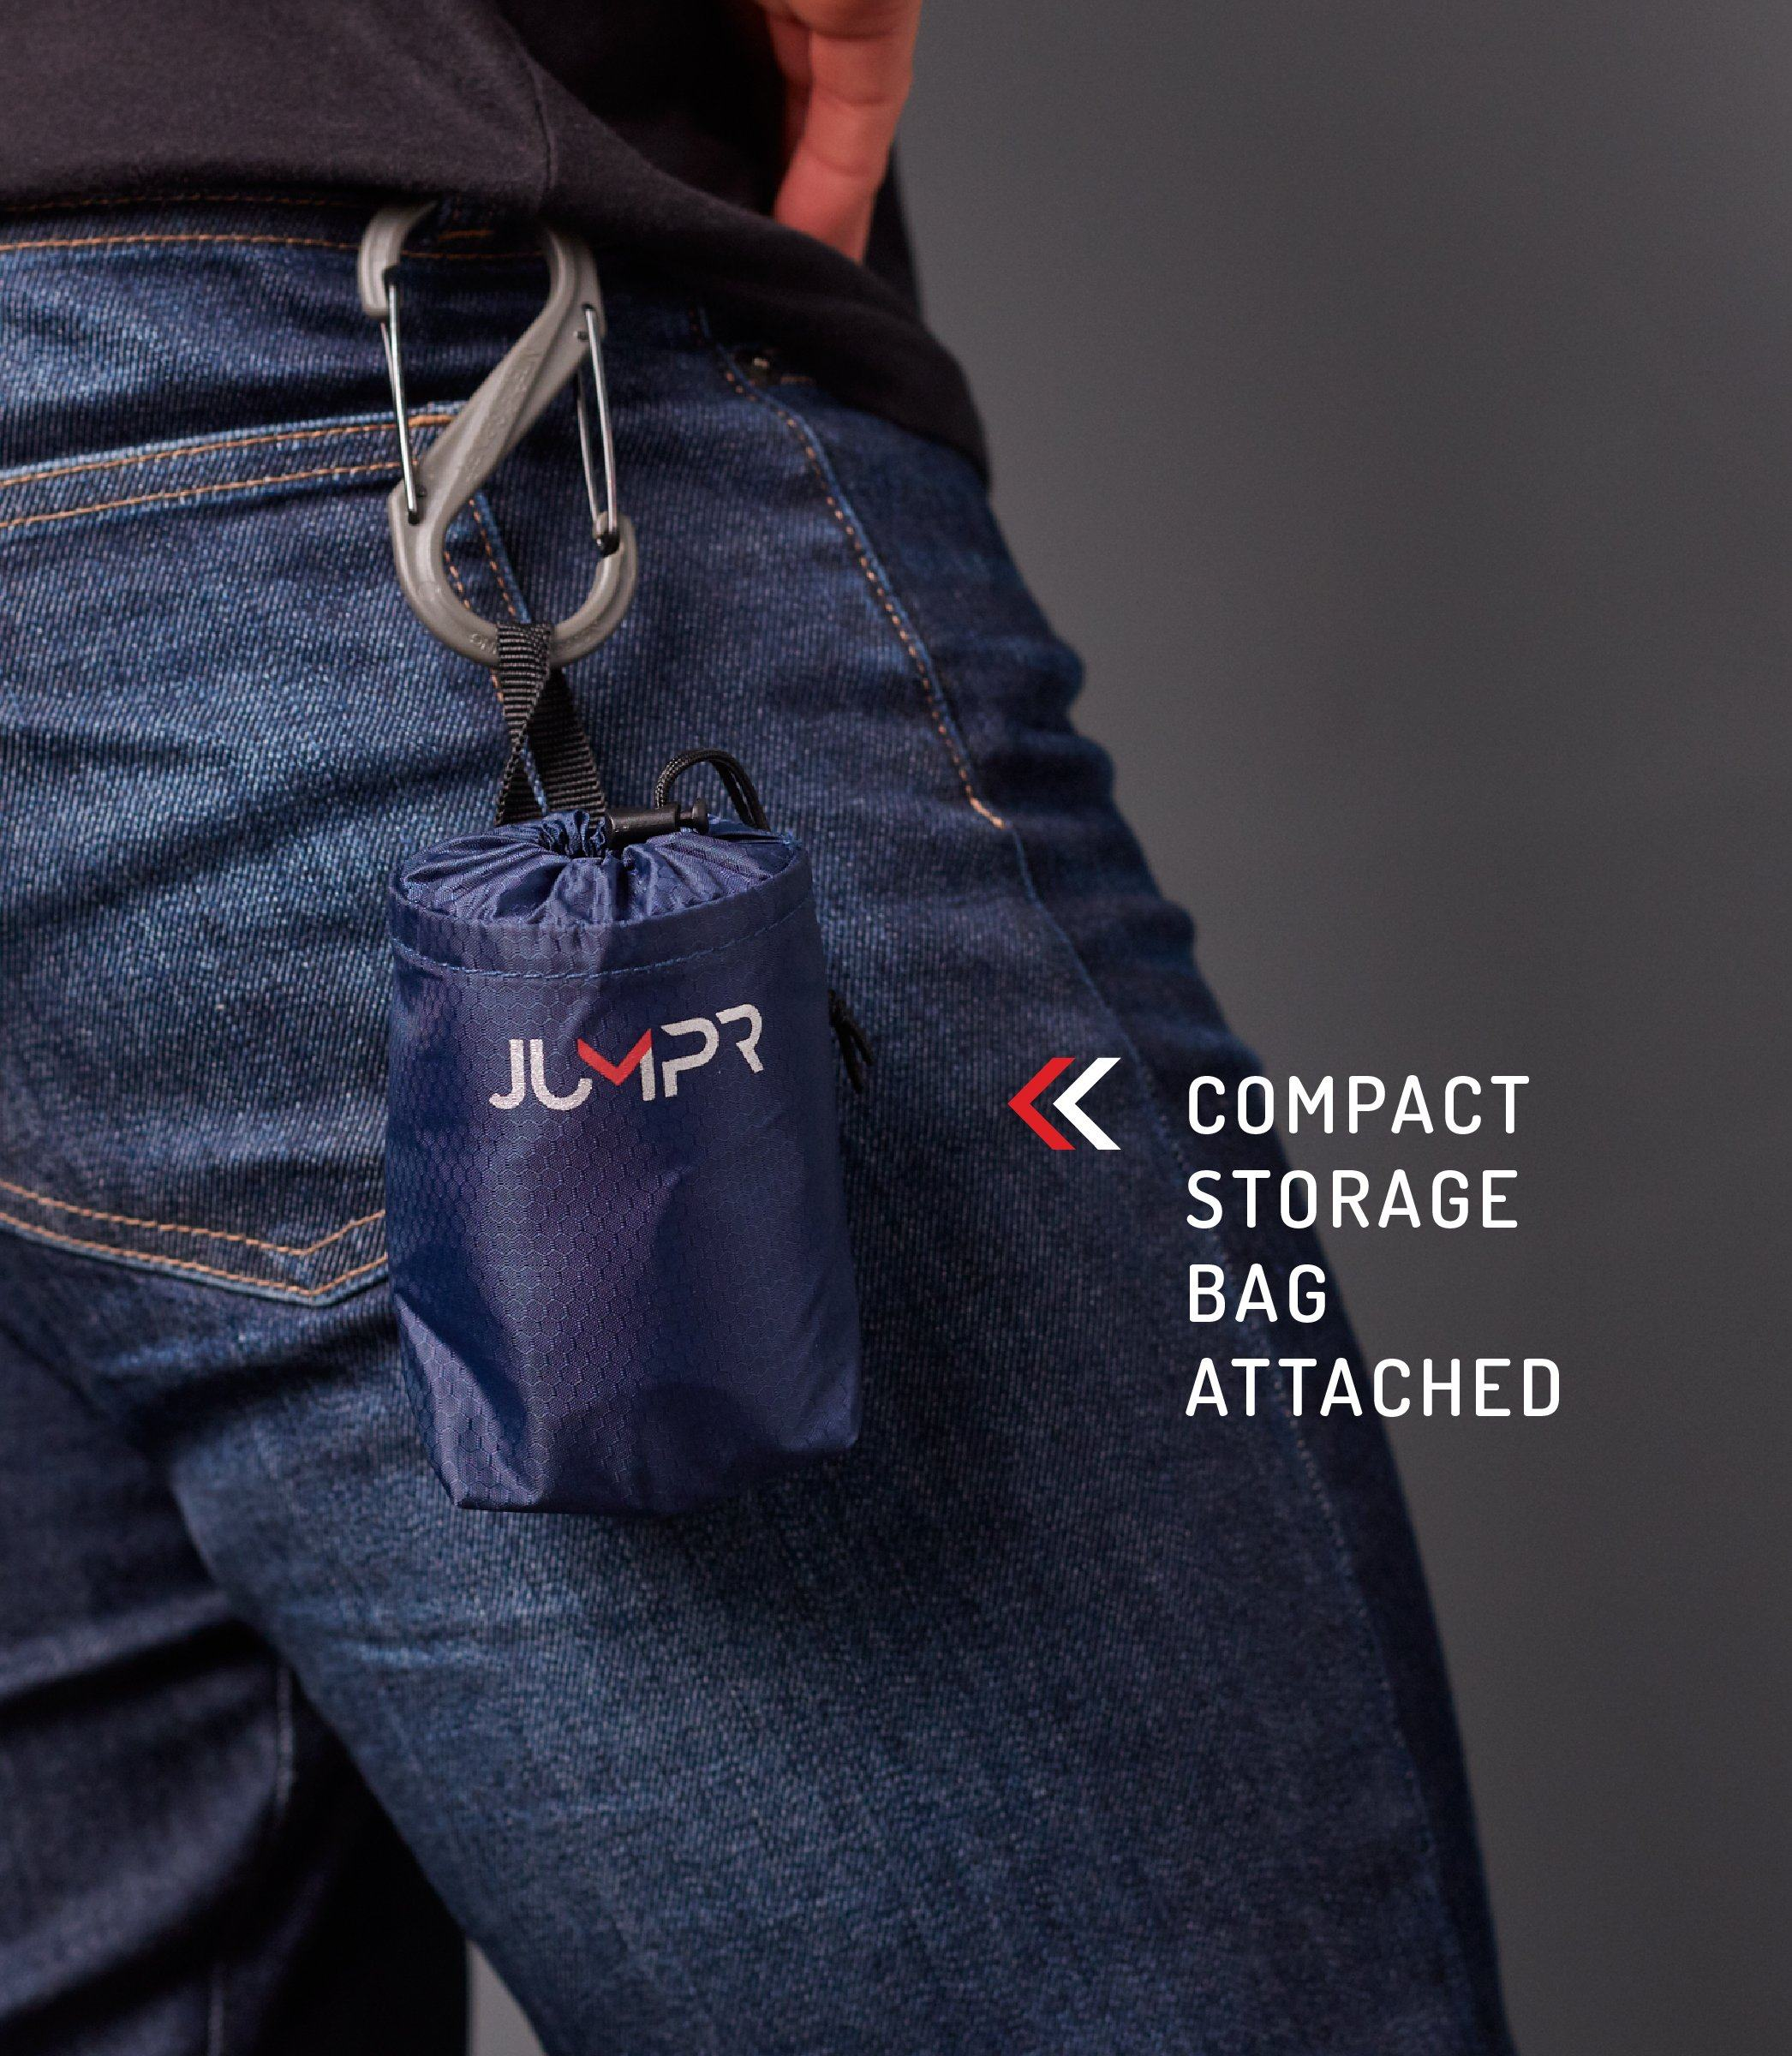 Travel - Jumpr Packable Fanny Pack